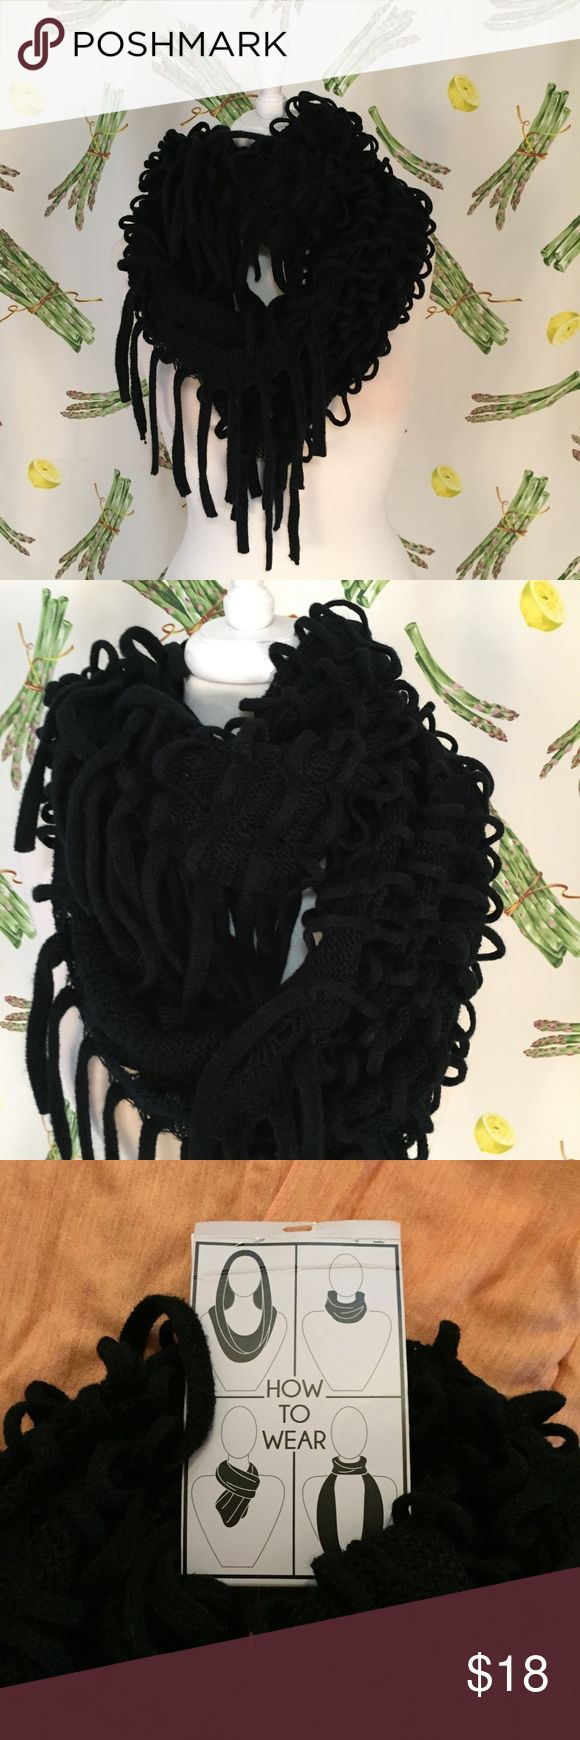 """Fantas-Eyes Infinity Knitted Scarf with Tassles Brand: Fantas-Eyes Size: OS Description: Infinity Style scarf, knitted fabric Condition: NWT Length: 42"""" Width: 25"""" Item #1785 Bundle Discount Available! Reasonable offers welcome! No trades please.. Thanks for stopping by!! #Poshmark #Poshmarkapp #Poshmarkcloset Fantas-Eyes Accessories Scarves & Wraps"""